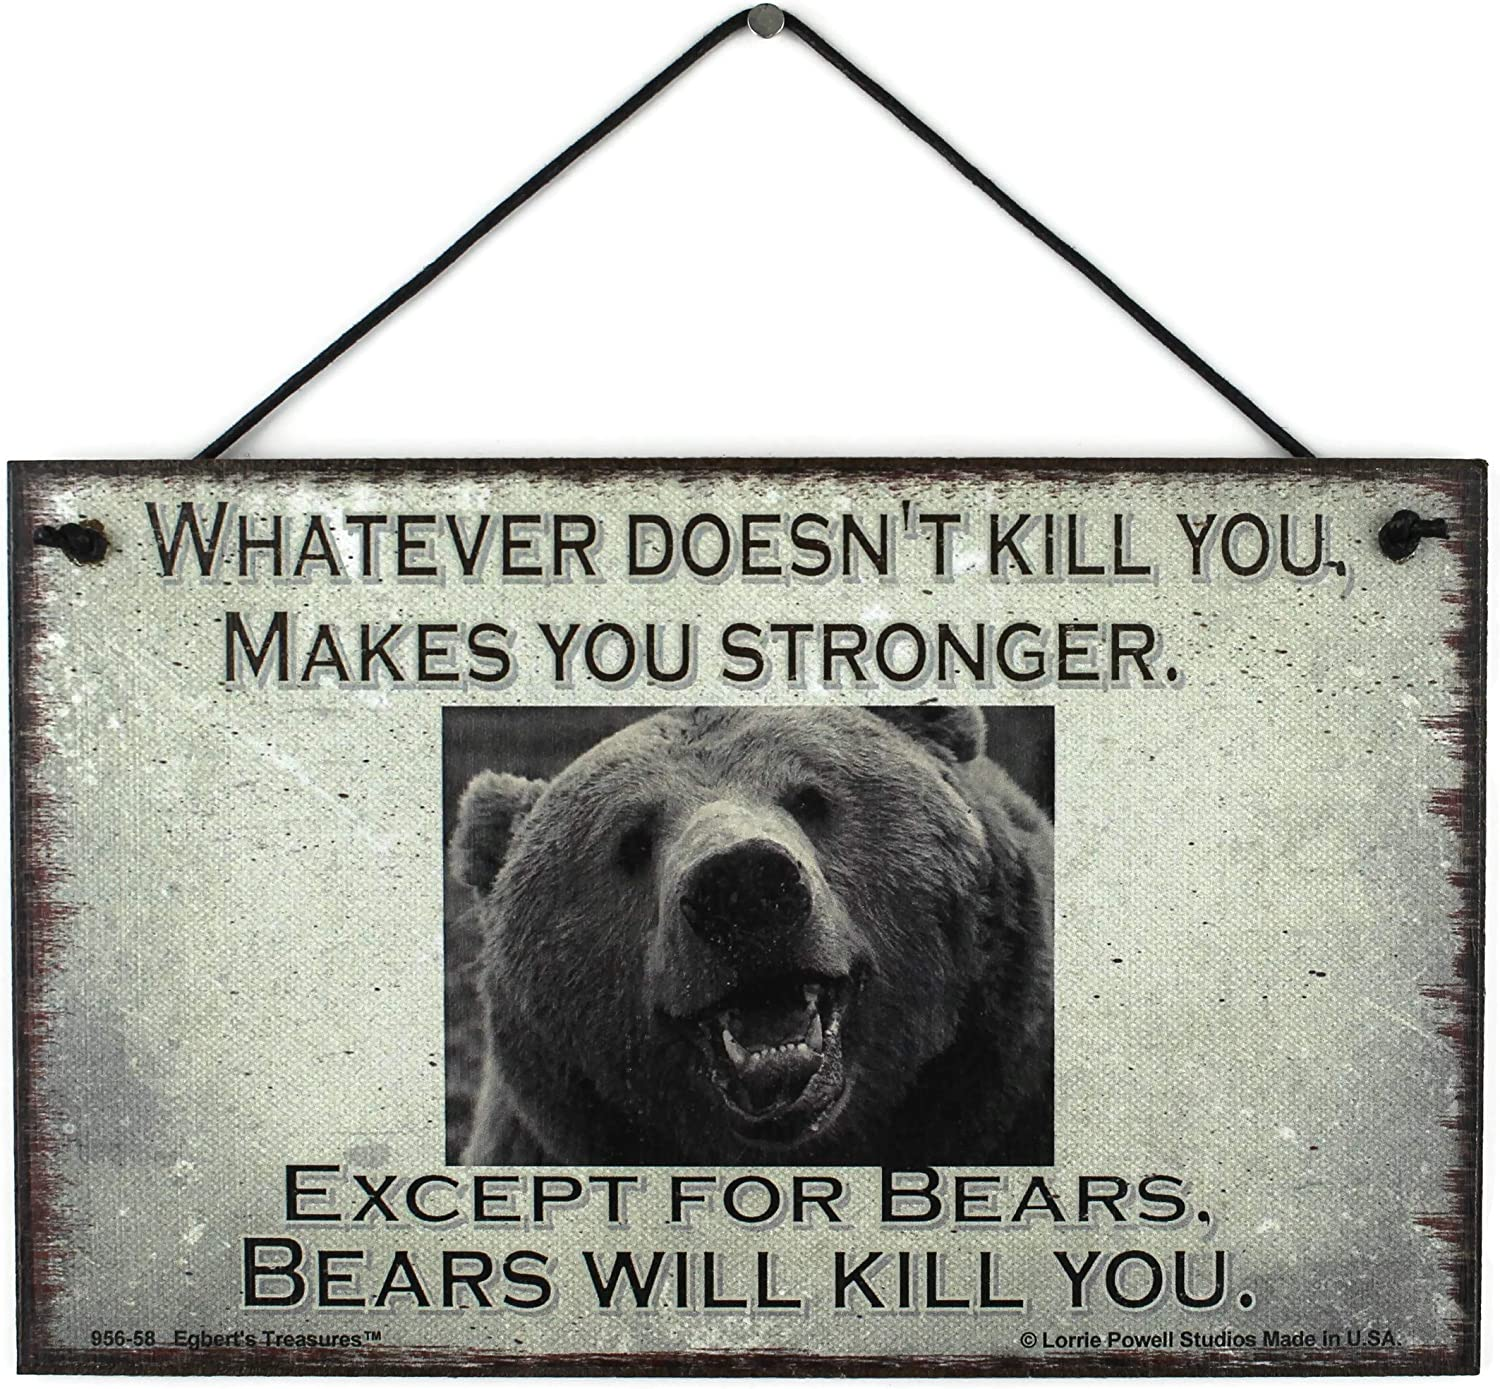 5x8 Vintage Style Sign (with Bear) Saying, Whatever Doesn't Kill You, Makes You Stronger. Except for Bears, Bears Will Kill You. Decorative Fun Universal Household Family Signs for Your Home